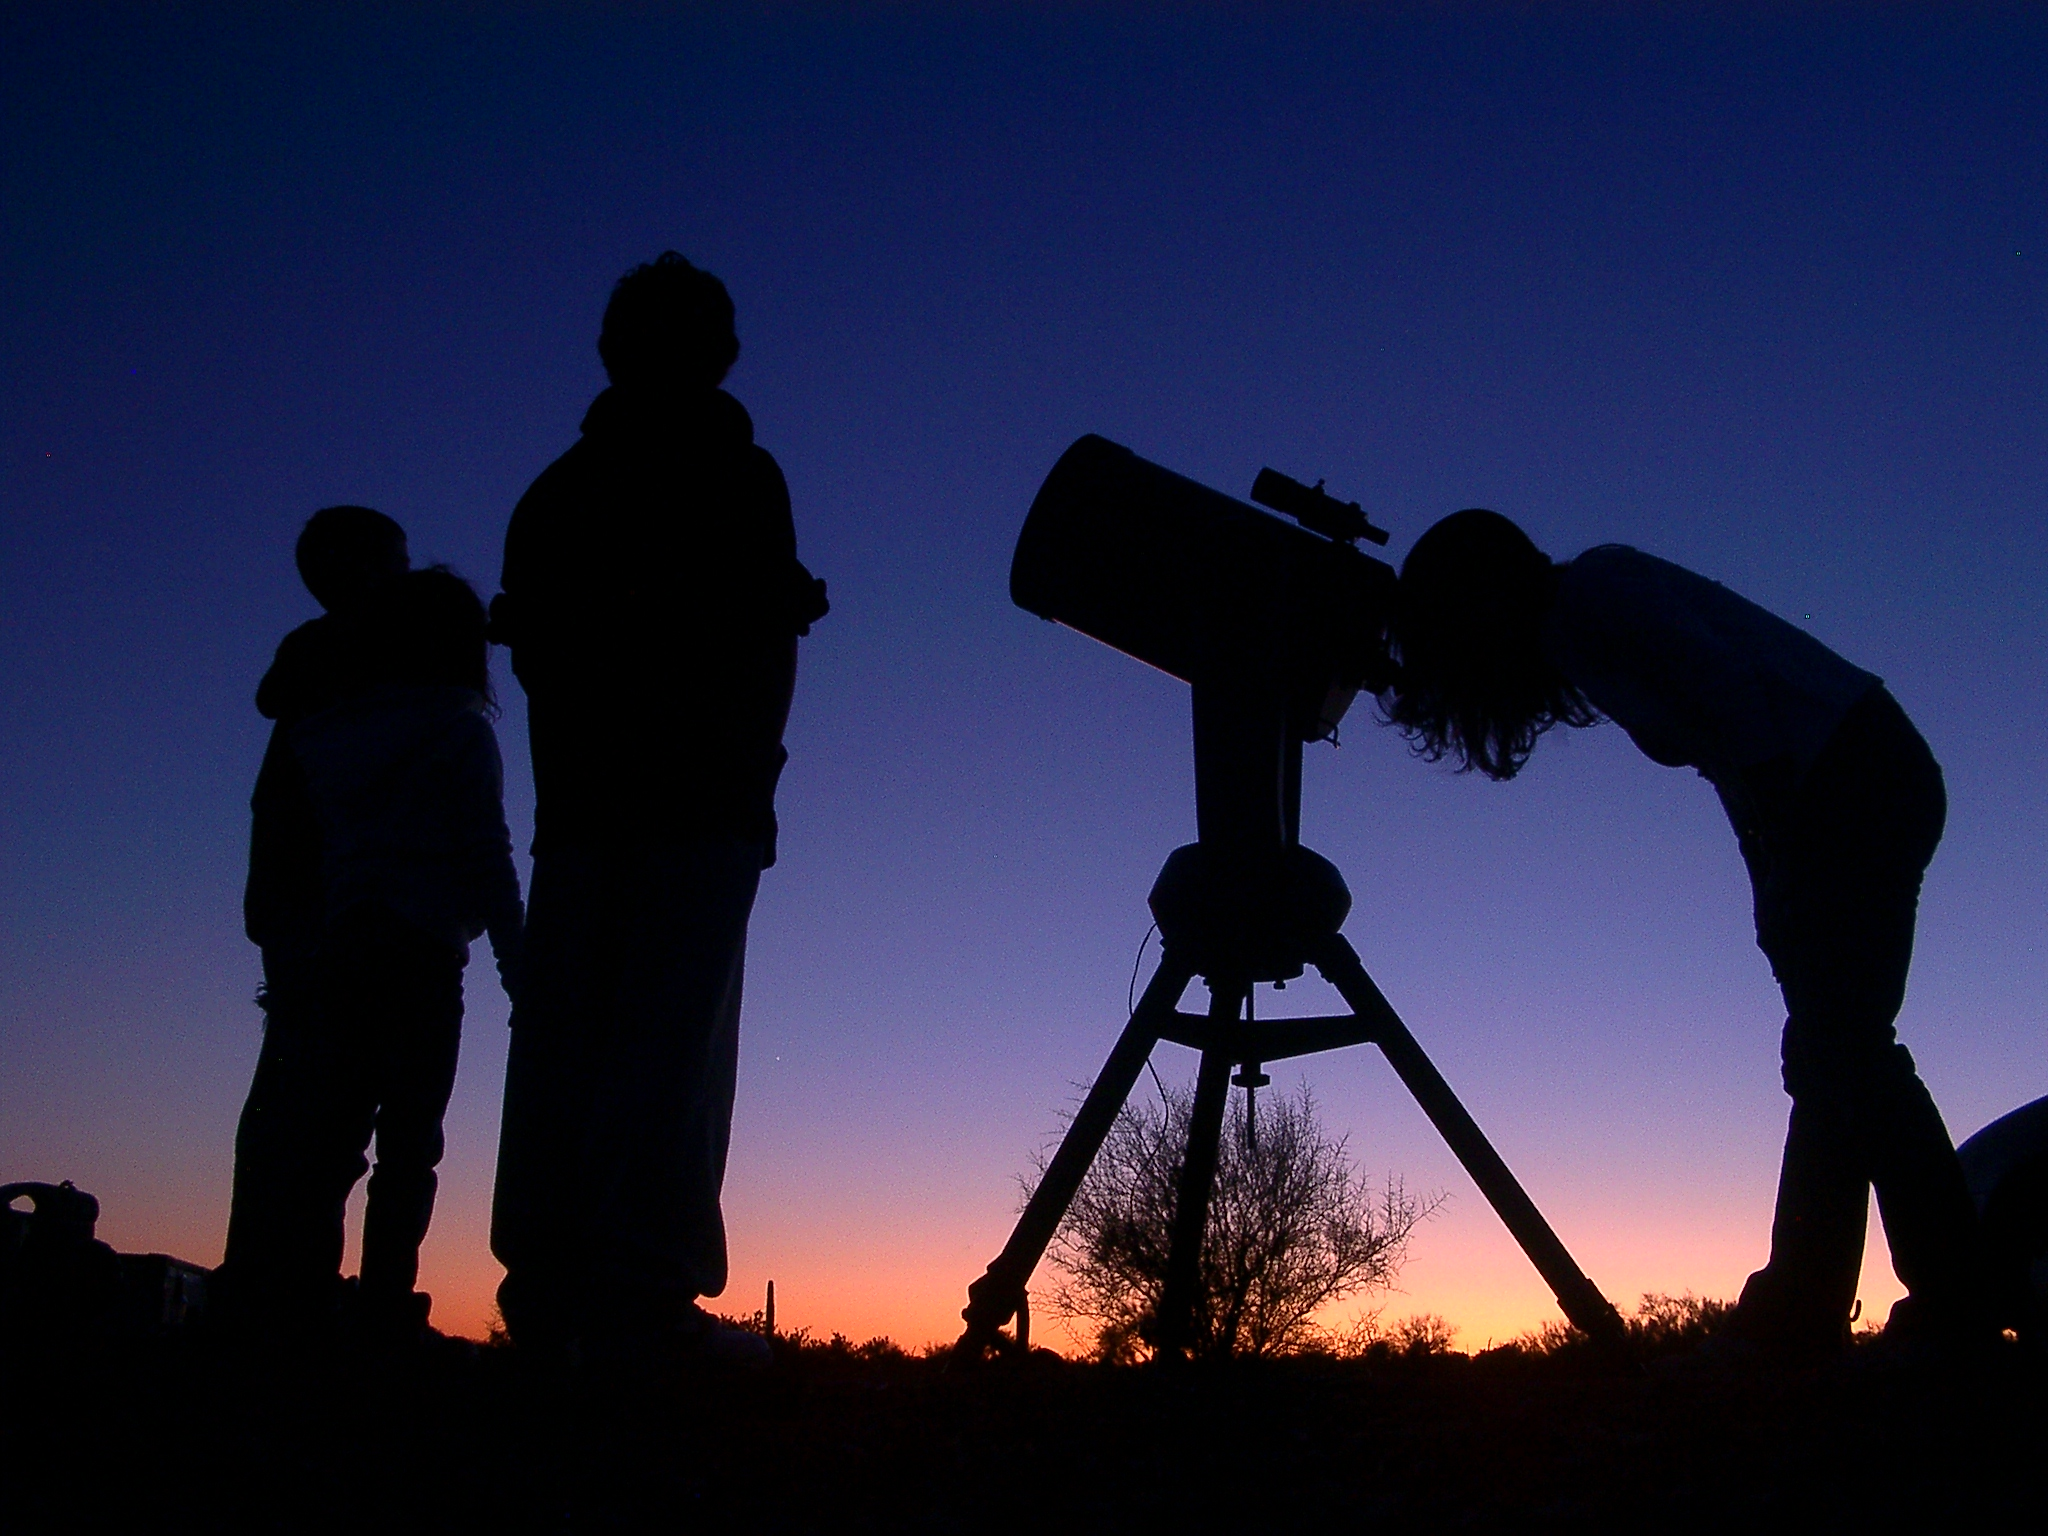 star gazing and astronomy - photo #34